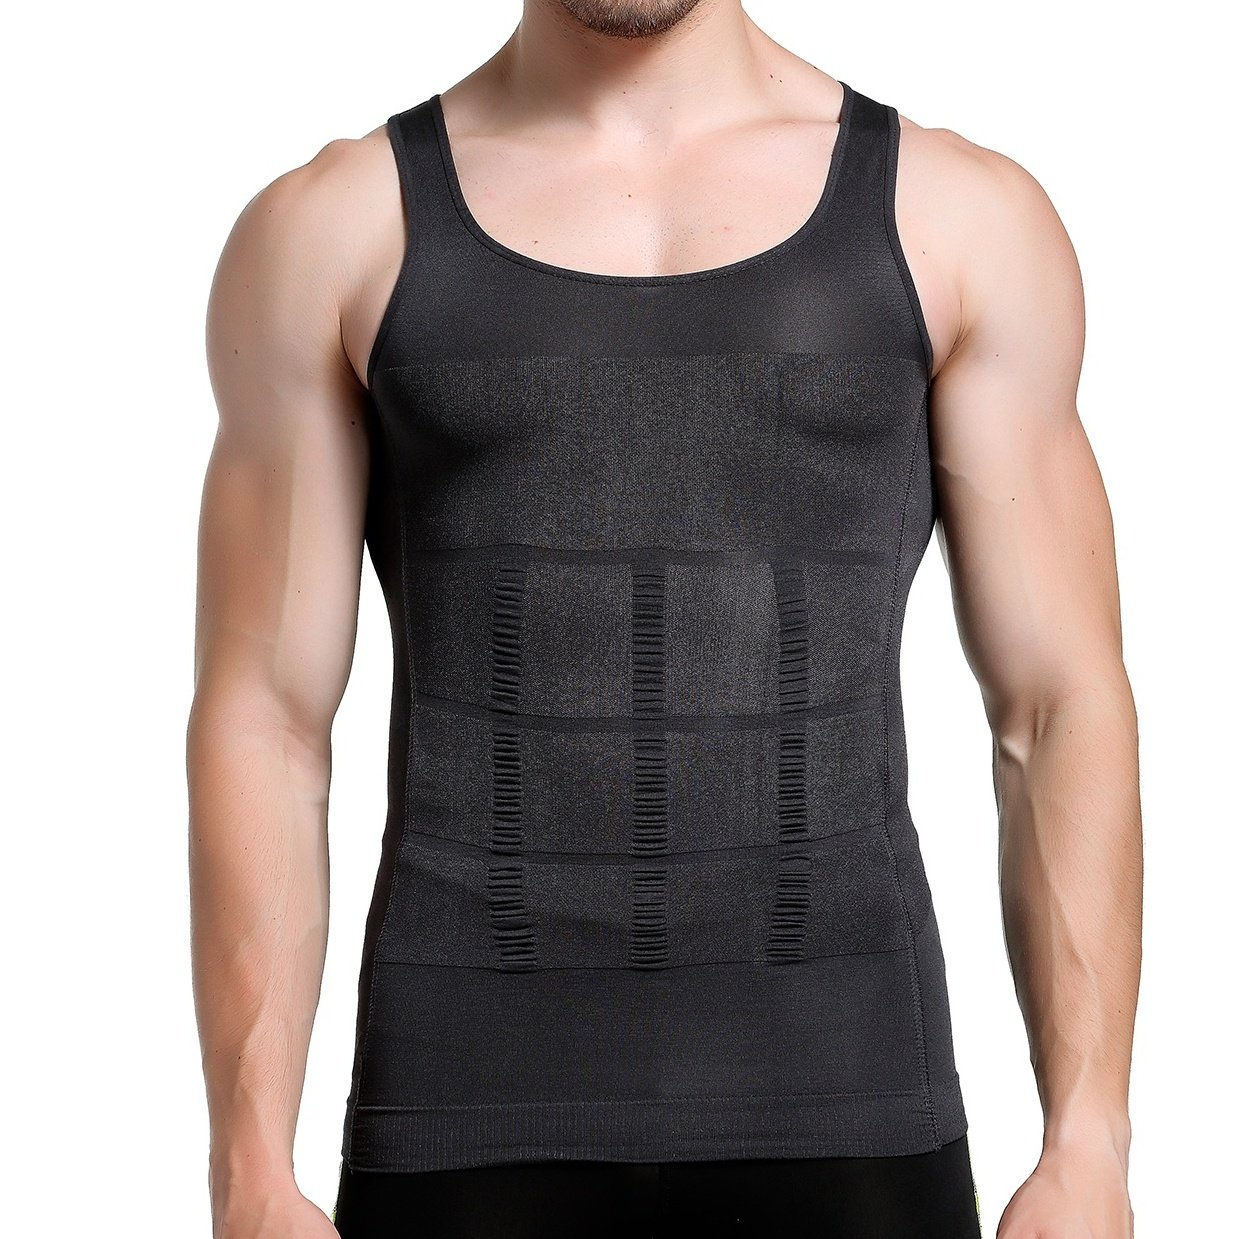 GKVK Mens Slimming Body Shaper Vest Shirt Abs Abdomen Slim,L(chest size 96cm-101cm/38inches-40inches),Gray